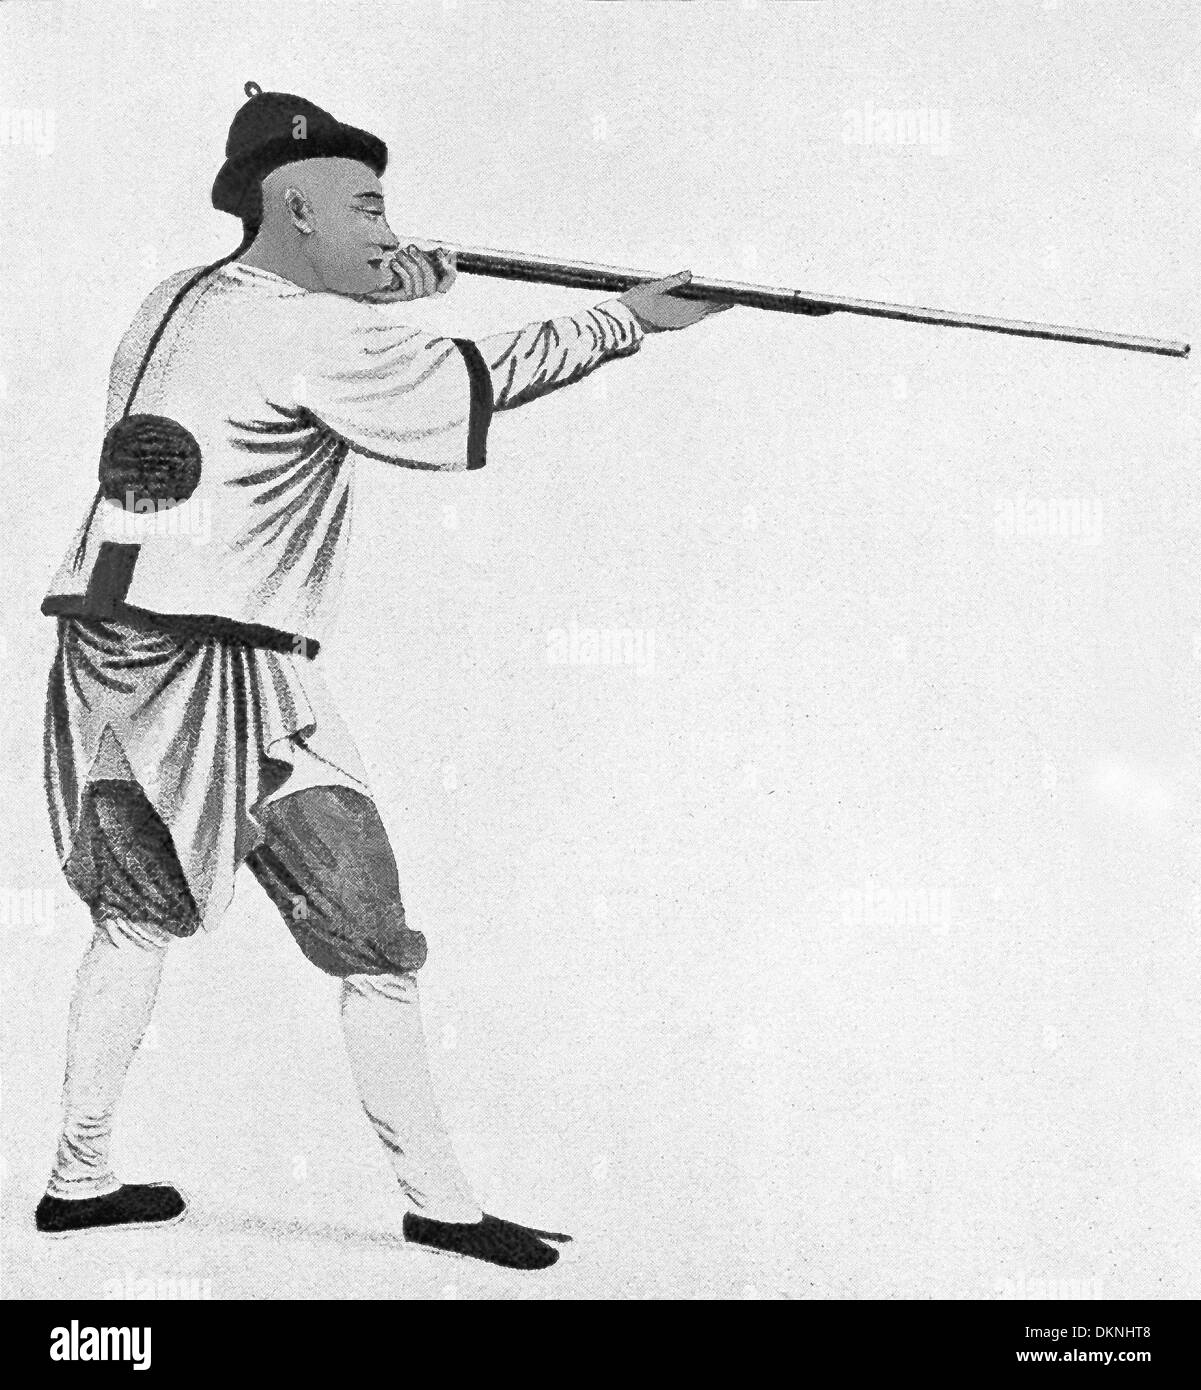 This illustration of a Chinese soldier, aiming his gun, dates to 1900. The time period in China is the Boxer Rebellion. - Stock Image